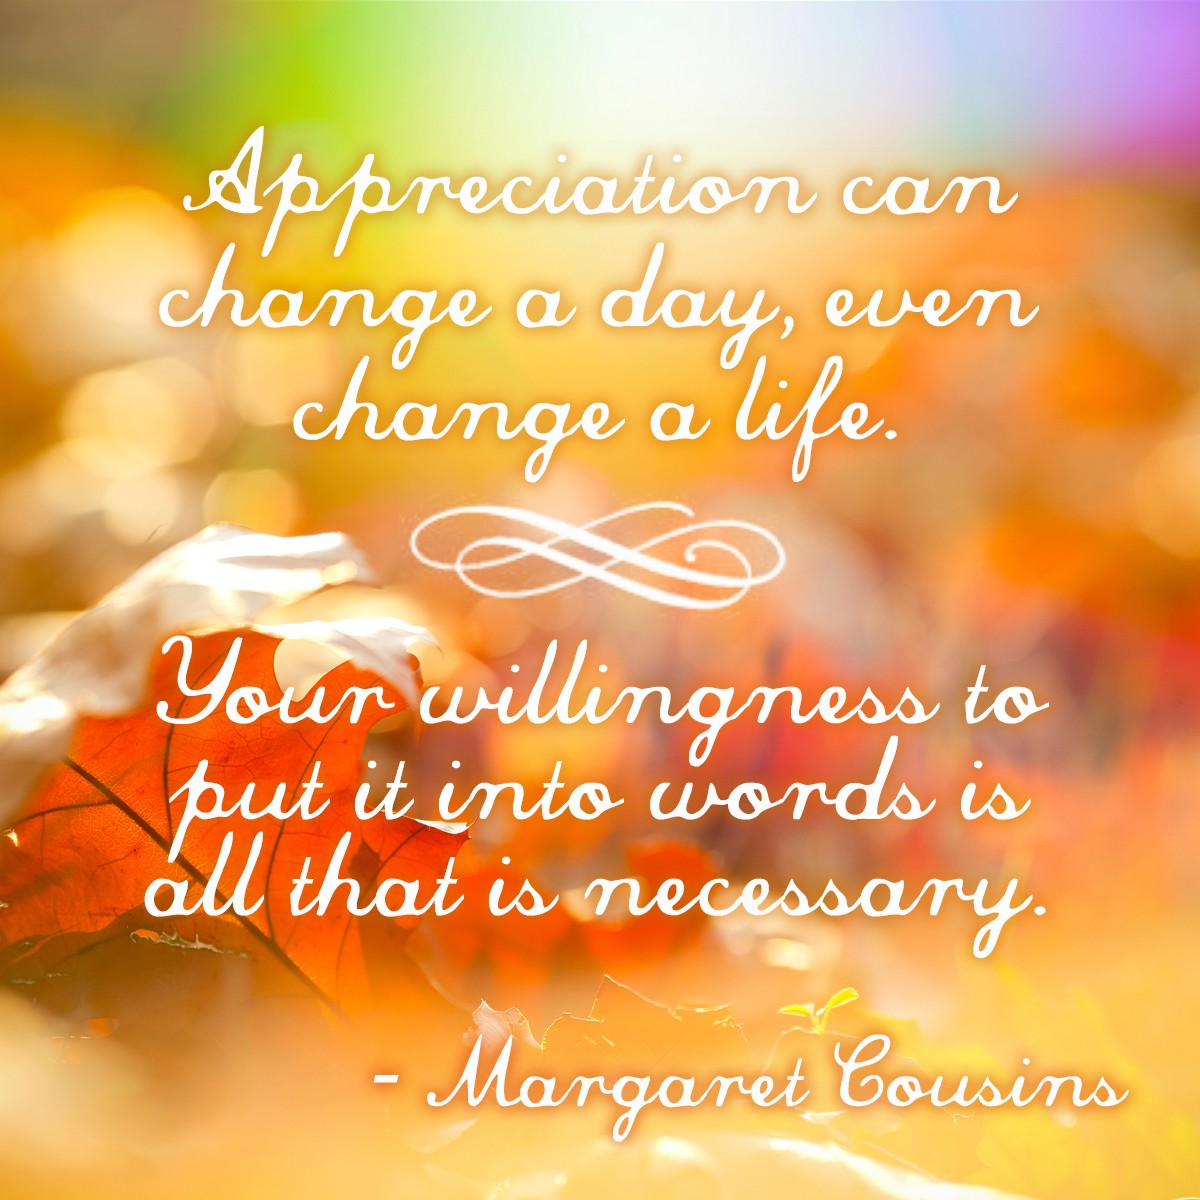 Appreciation can change a day, even change a life. Your willingness to put it into words is all that is necessary. - Margaret Cousins | Thanksgiving.com